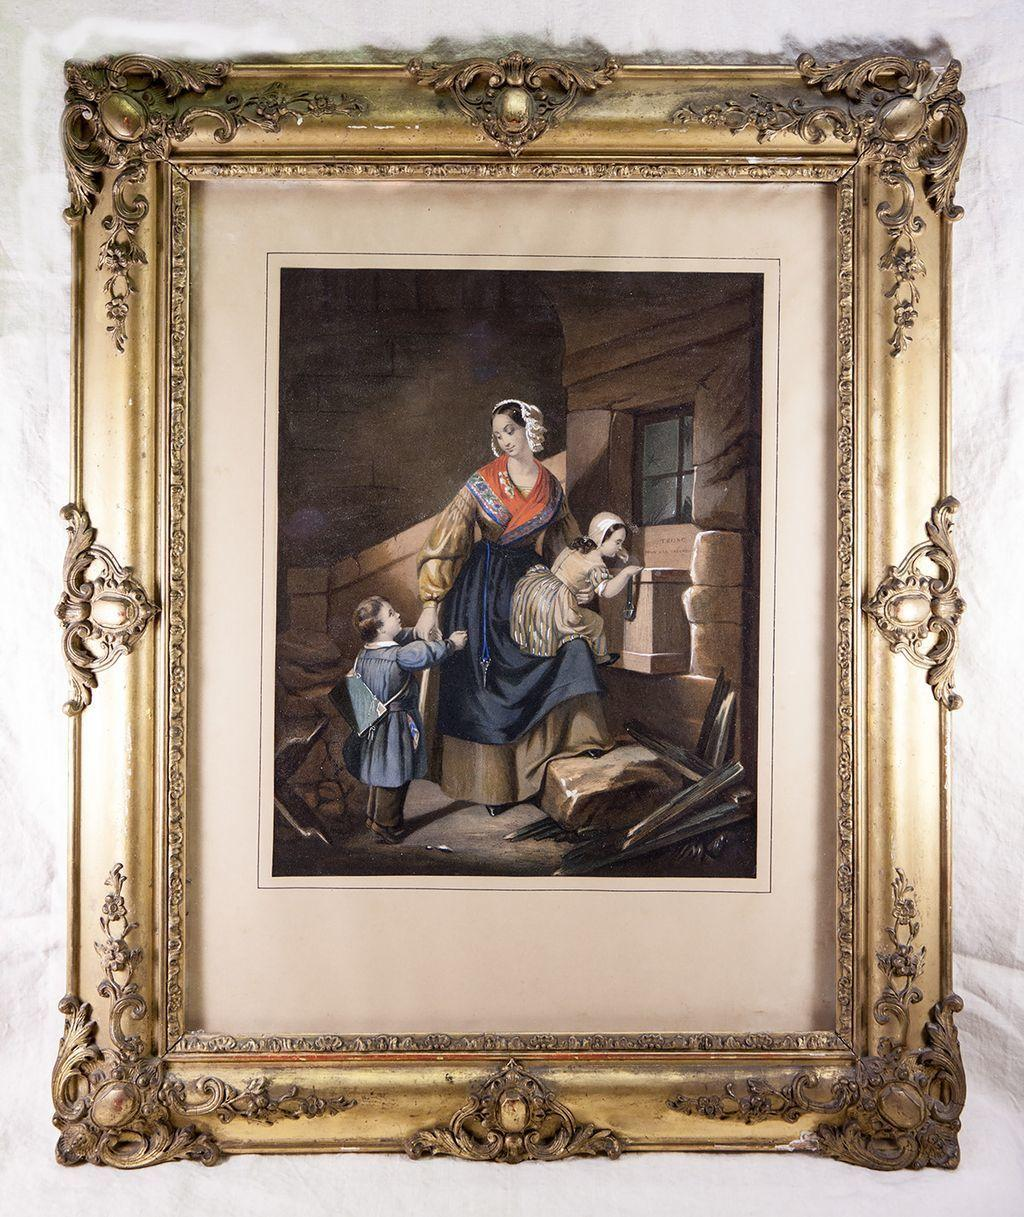 Antique French Frame and Superb Louis Philippe Era Chromo Print with Hand Painting, c. 1830-40